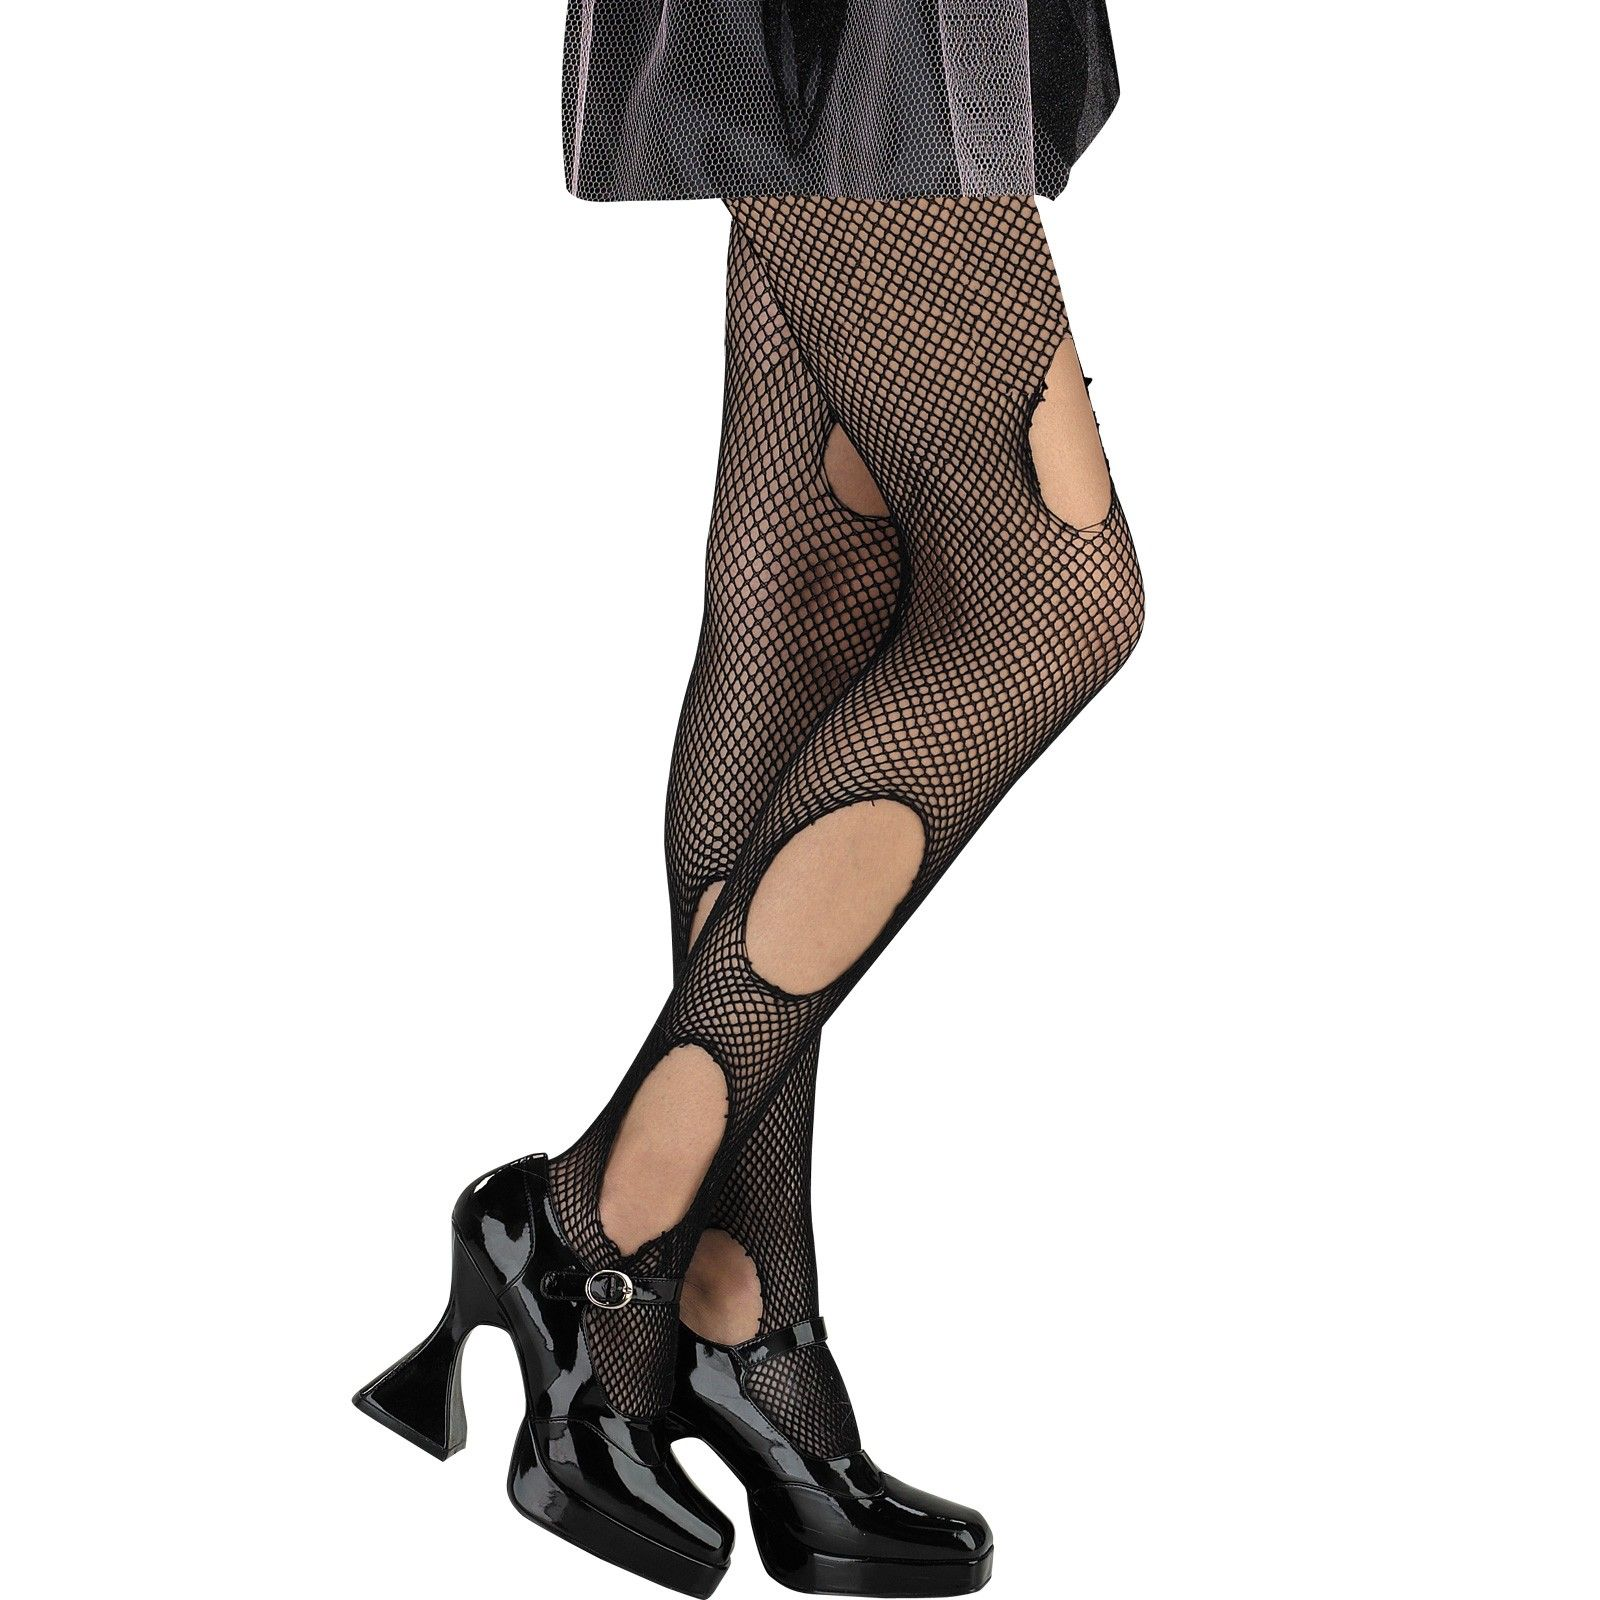 Black Torn Stockings Costume Accessory Tights